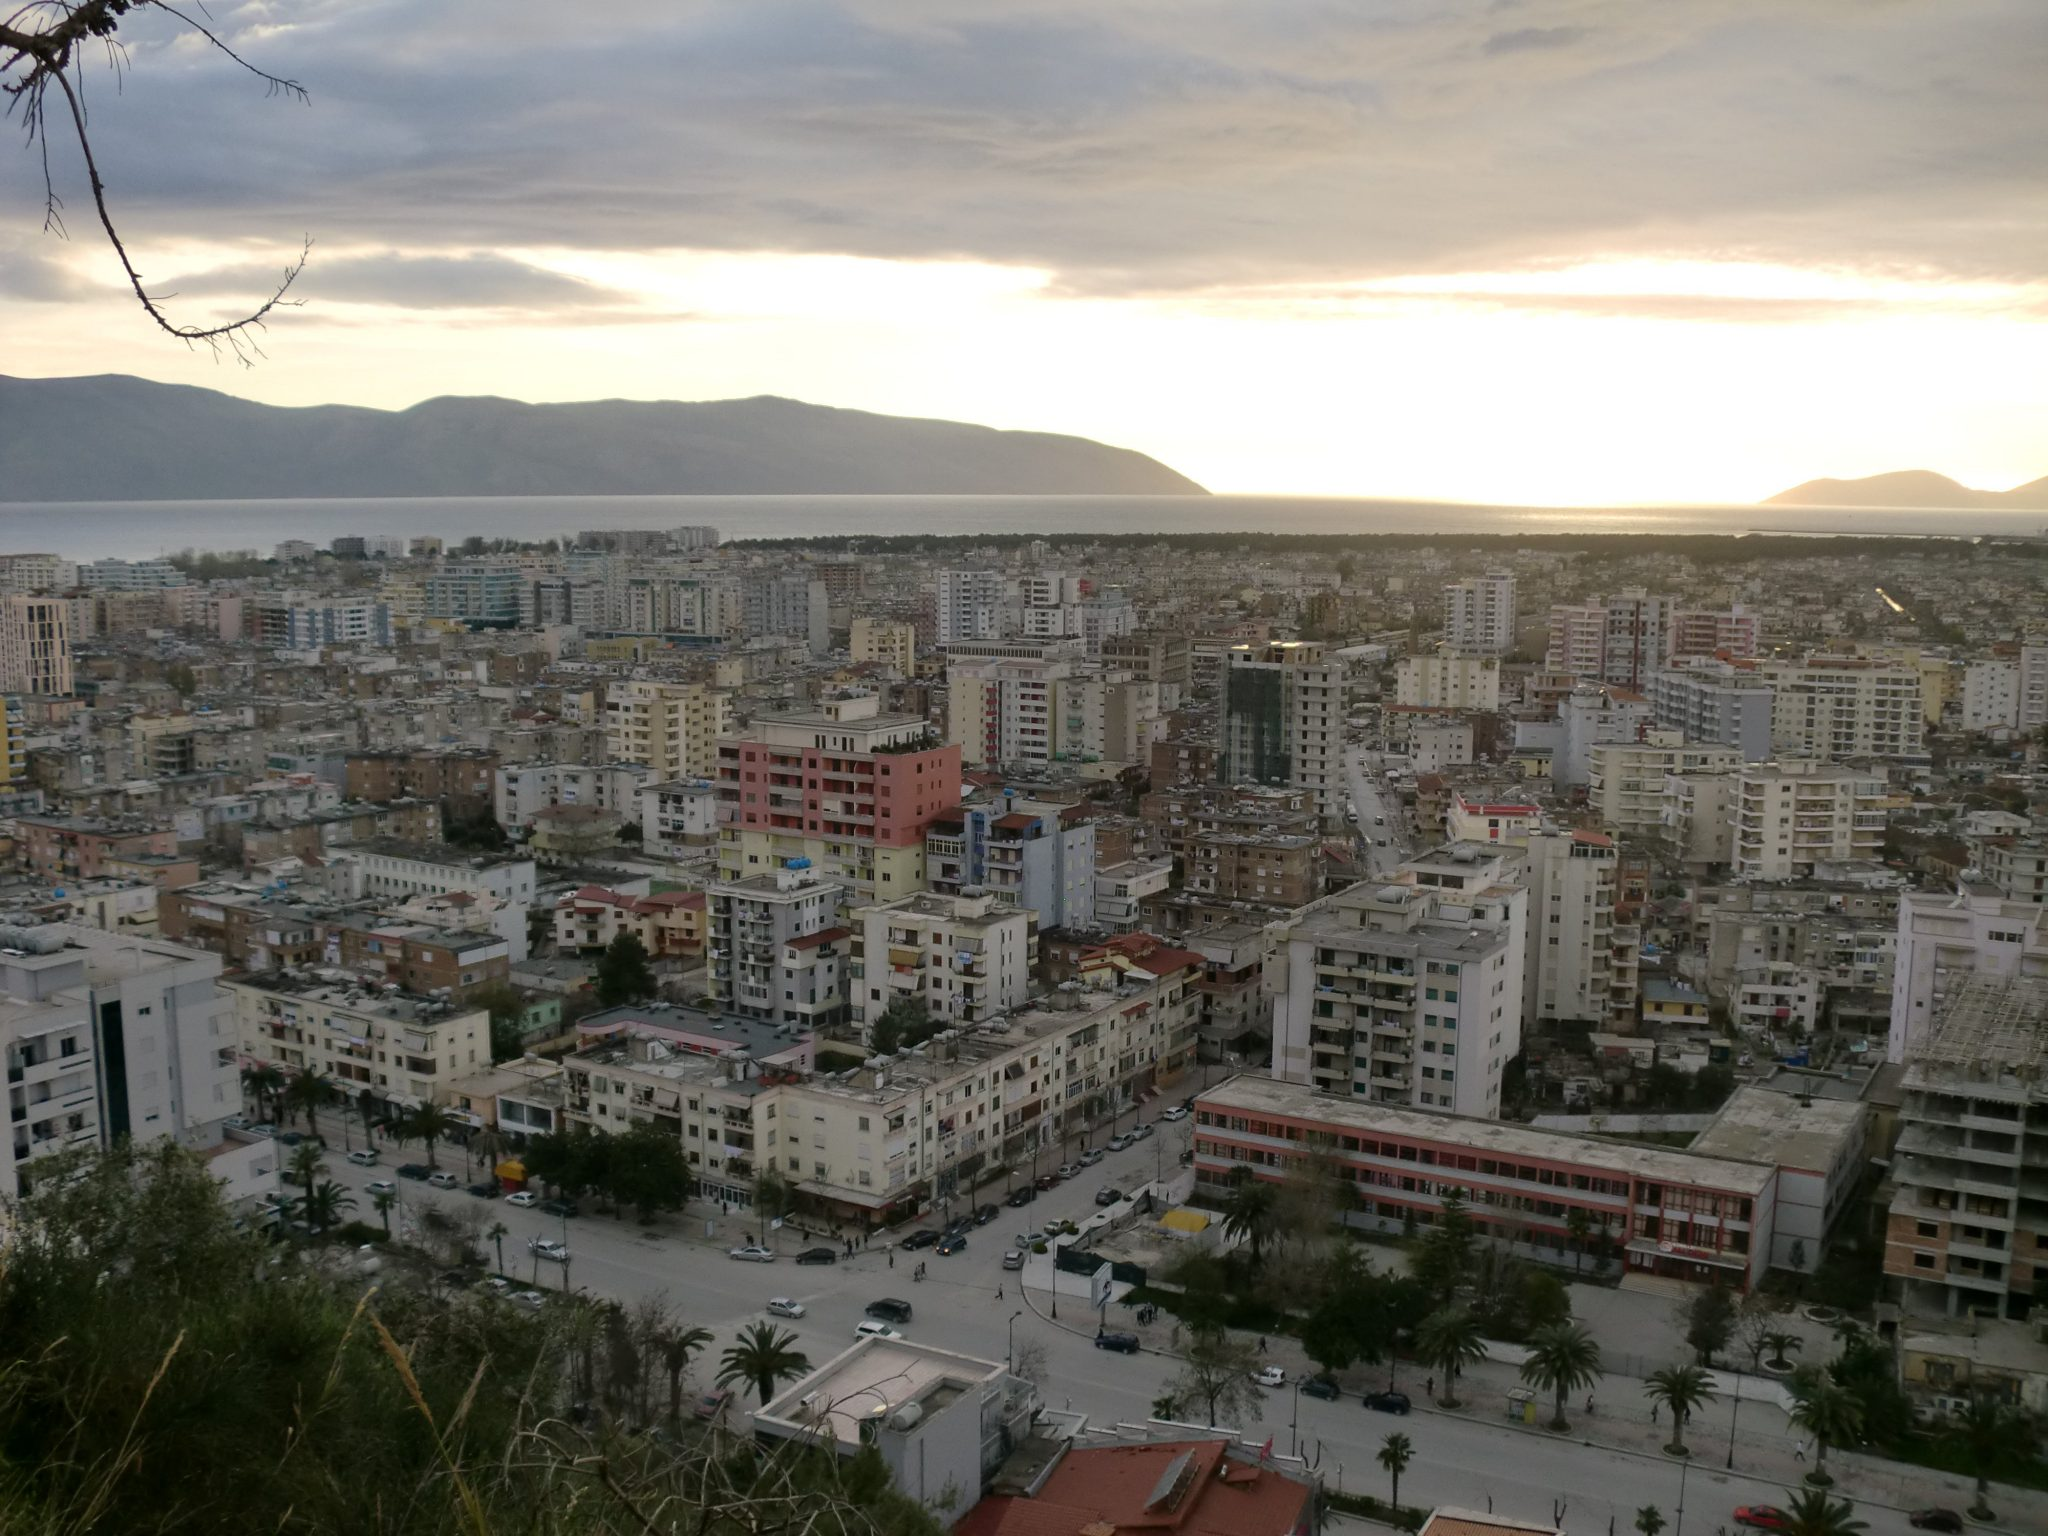 The ancient city of Vlora